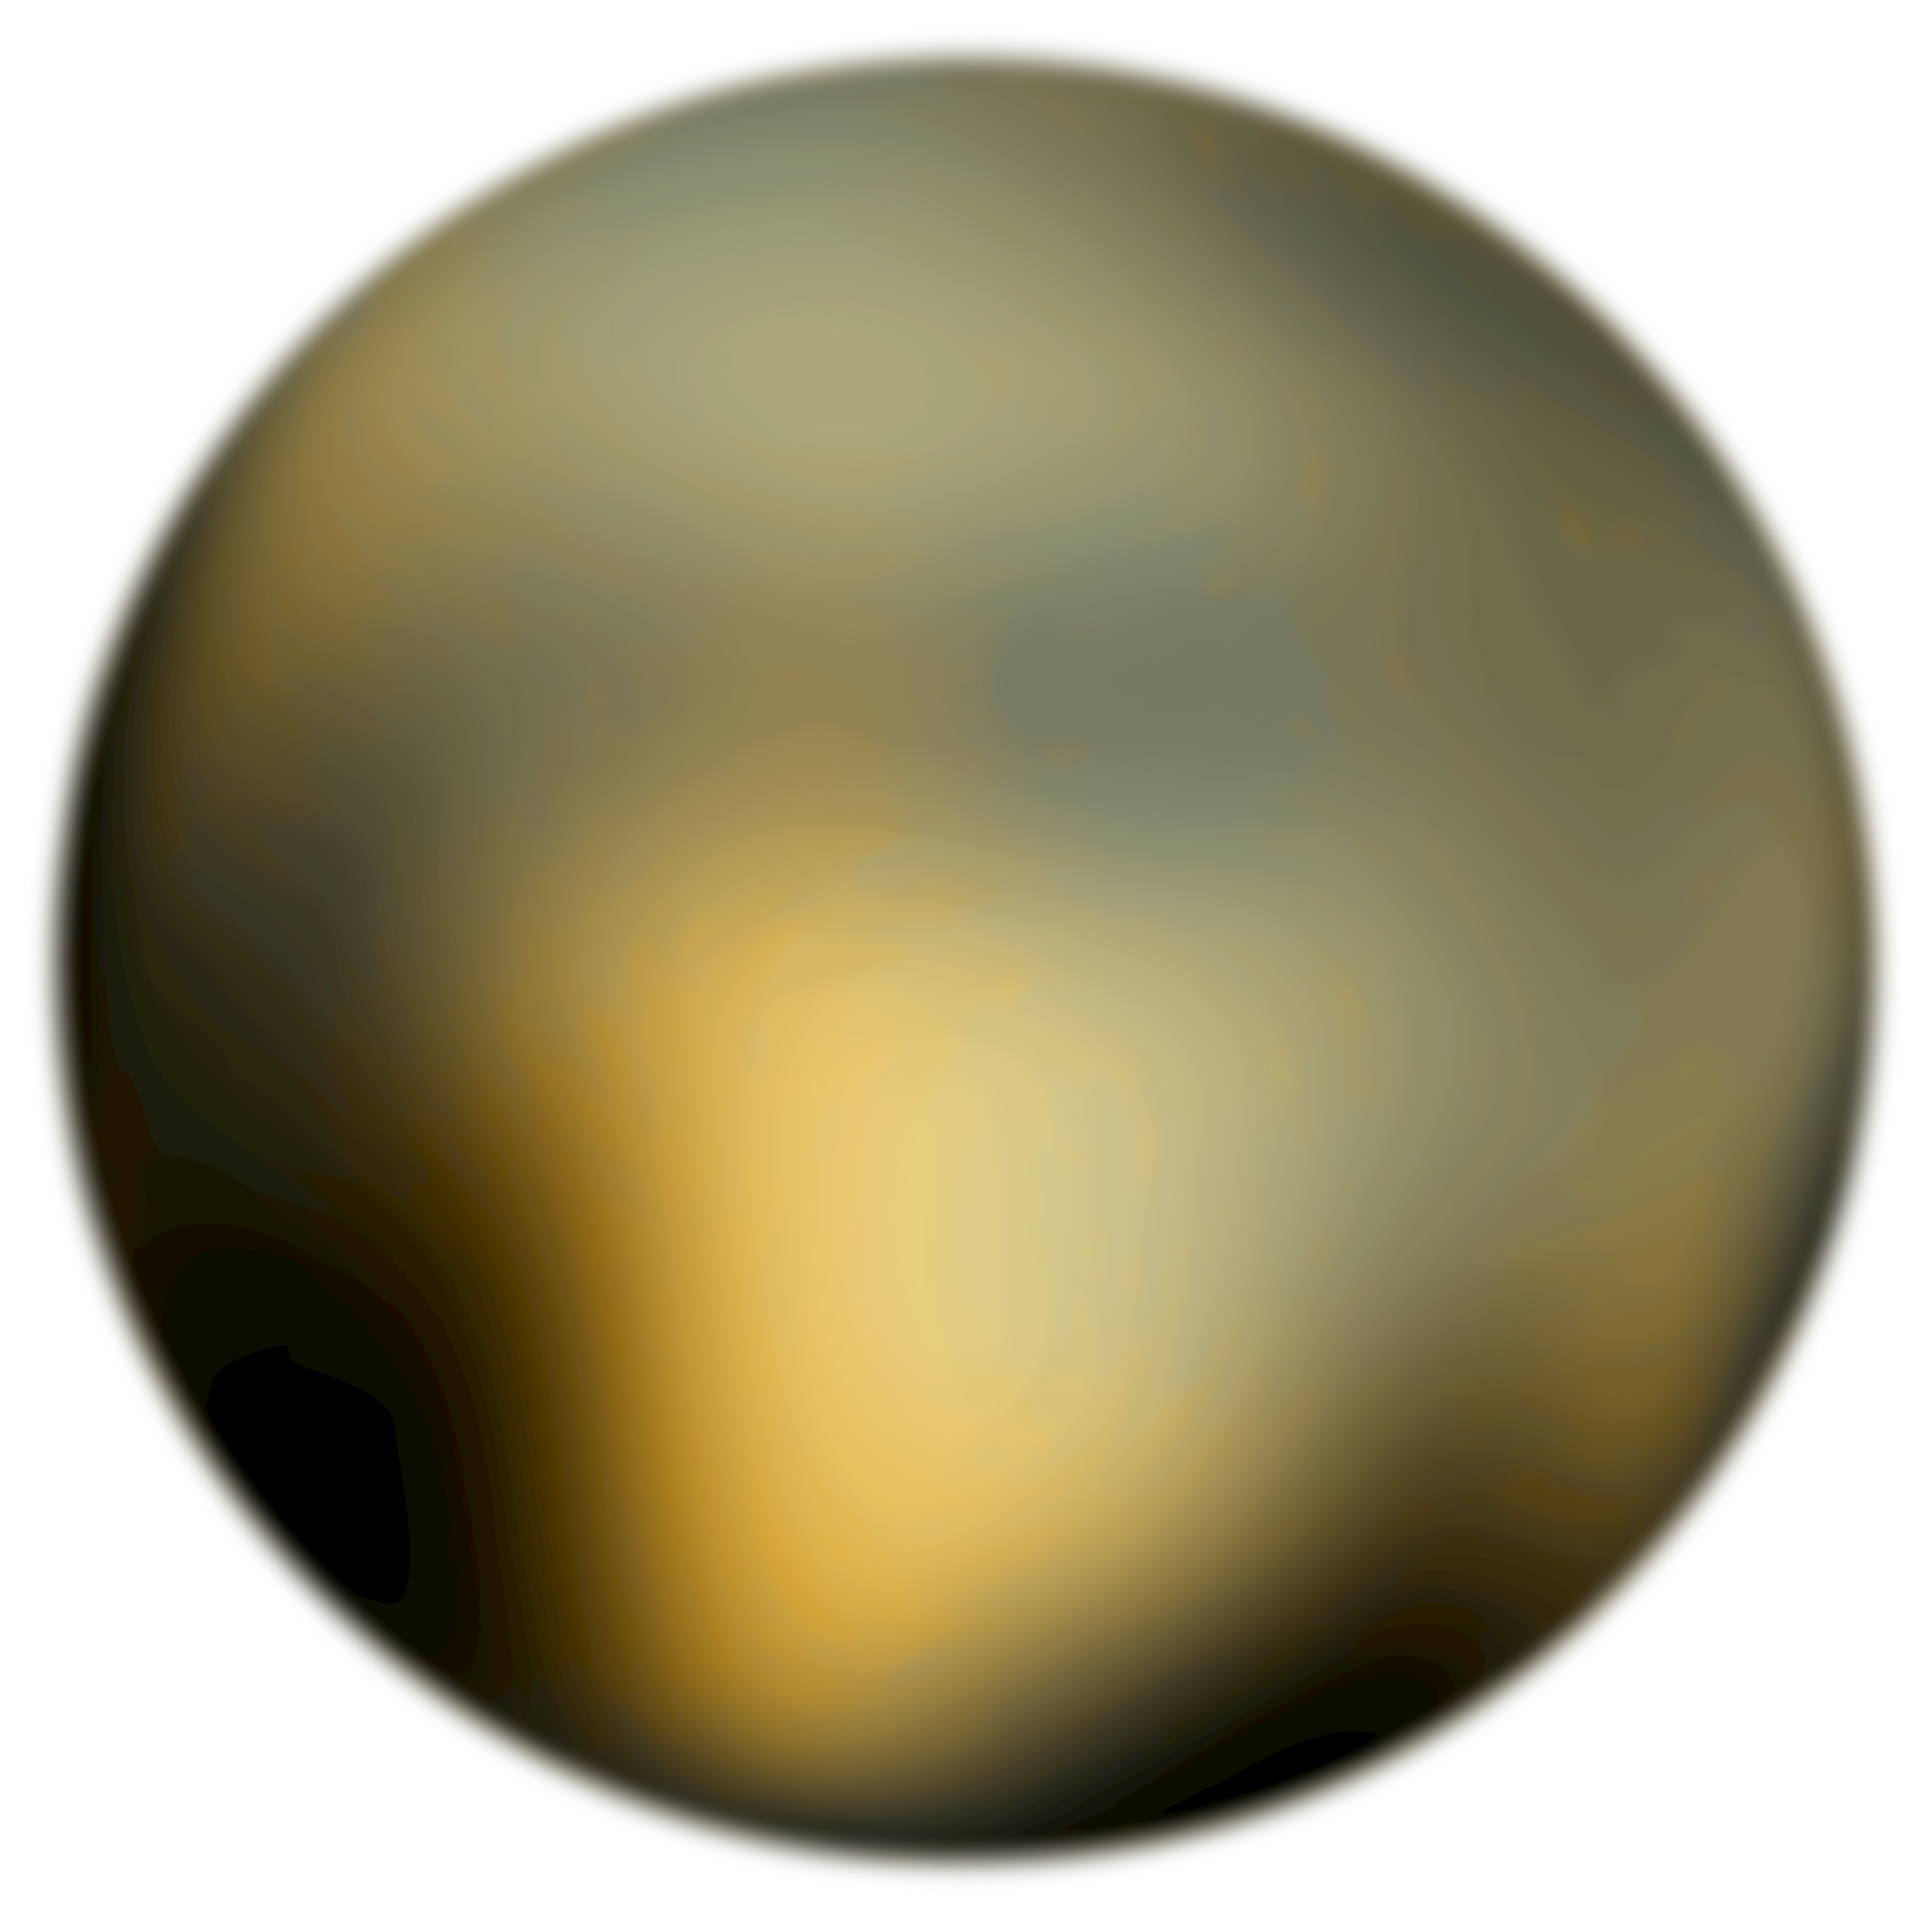 Pluto 180 Degree Face From Hubble Telescope by Merlin2525